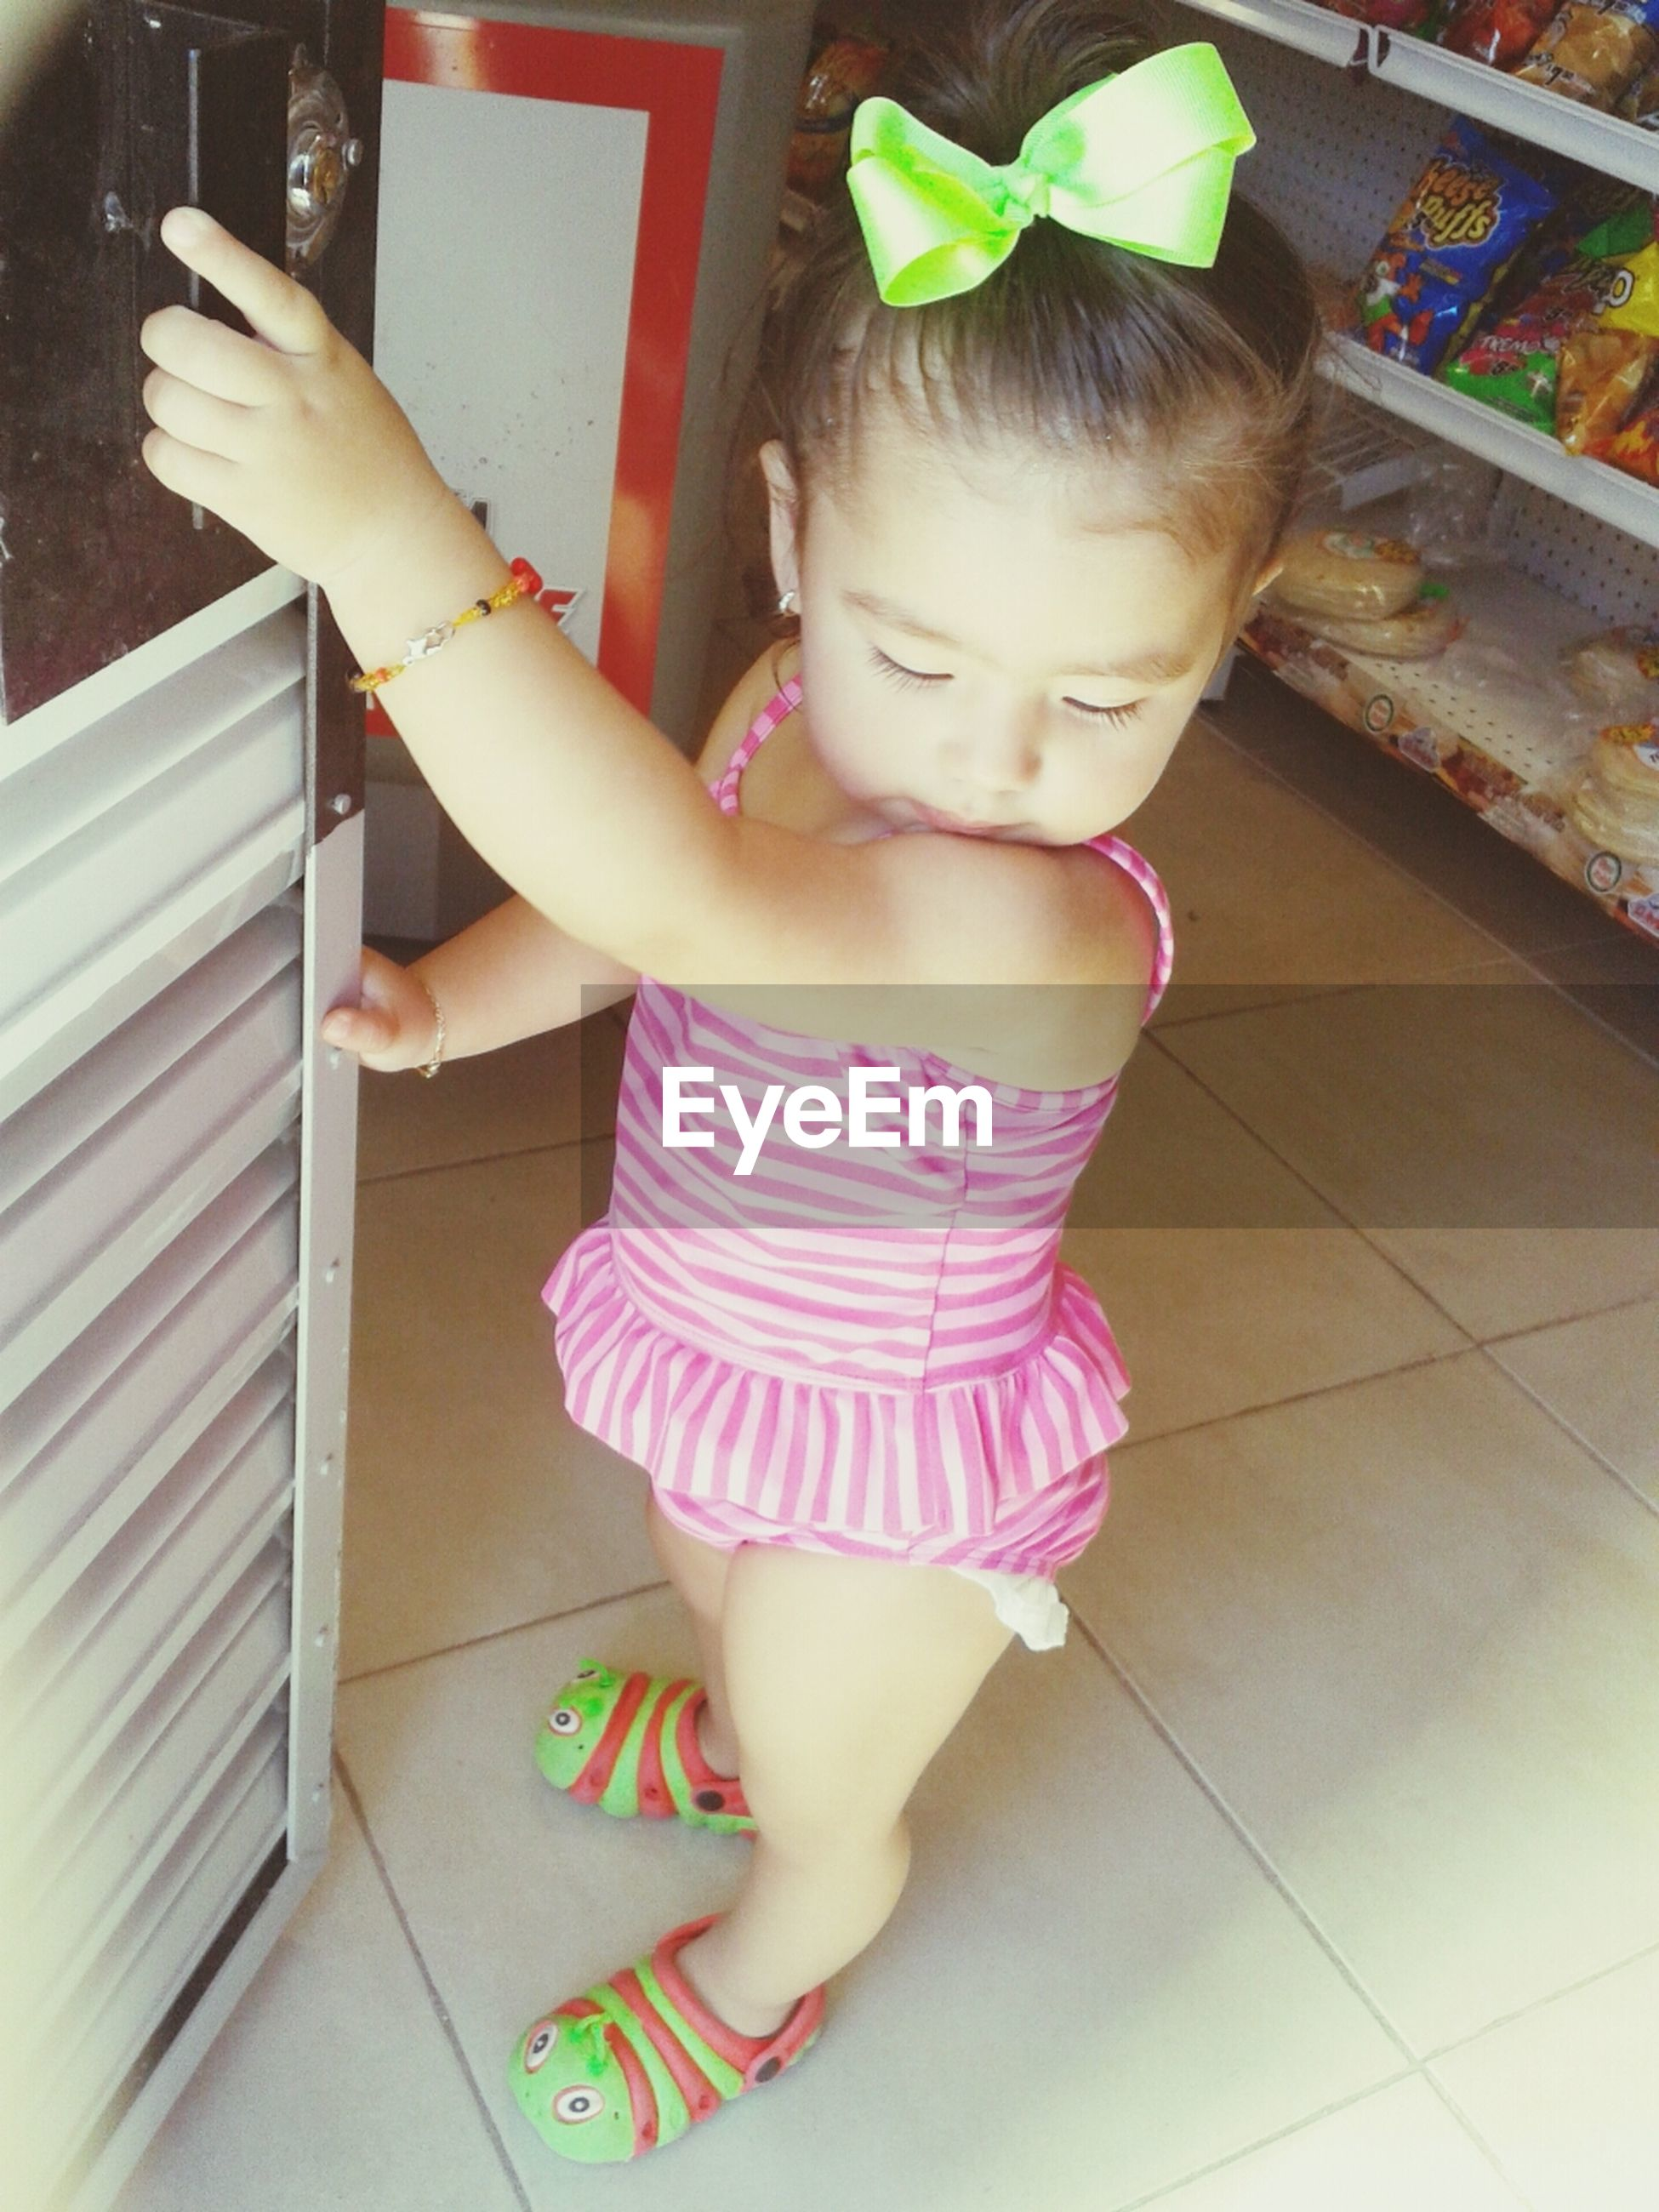 childhood, elementary age, cute, innocence, person, girls, indoors, lifestyles, boys, casual clothing, full length, leisure activity, high angle view, playing, toddler, holding, preschool age, playful